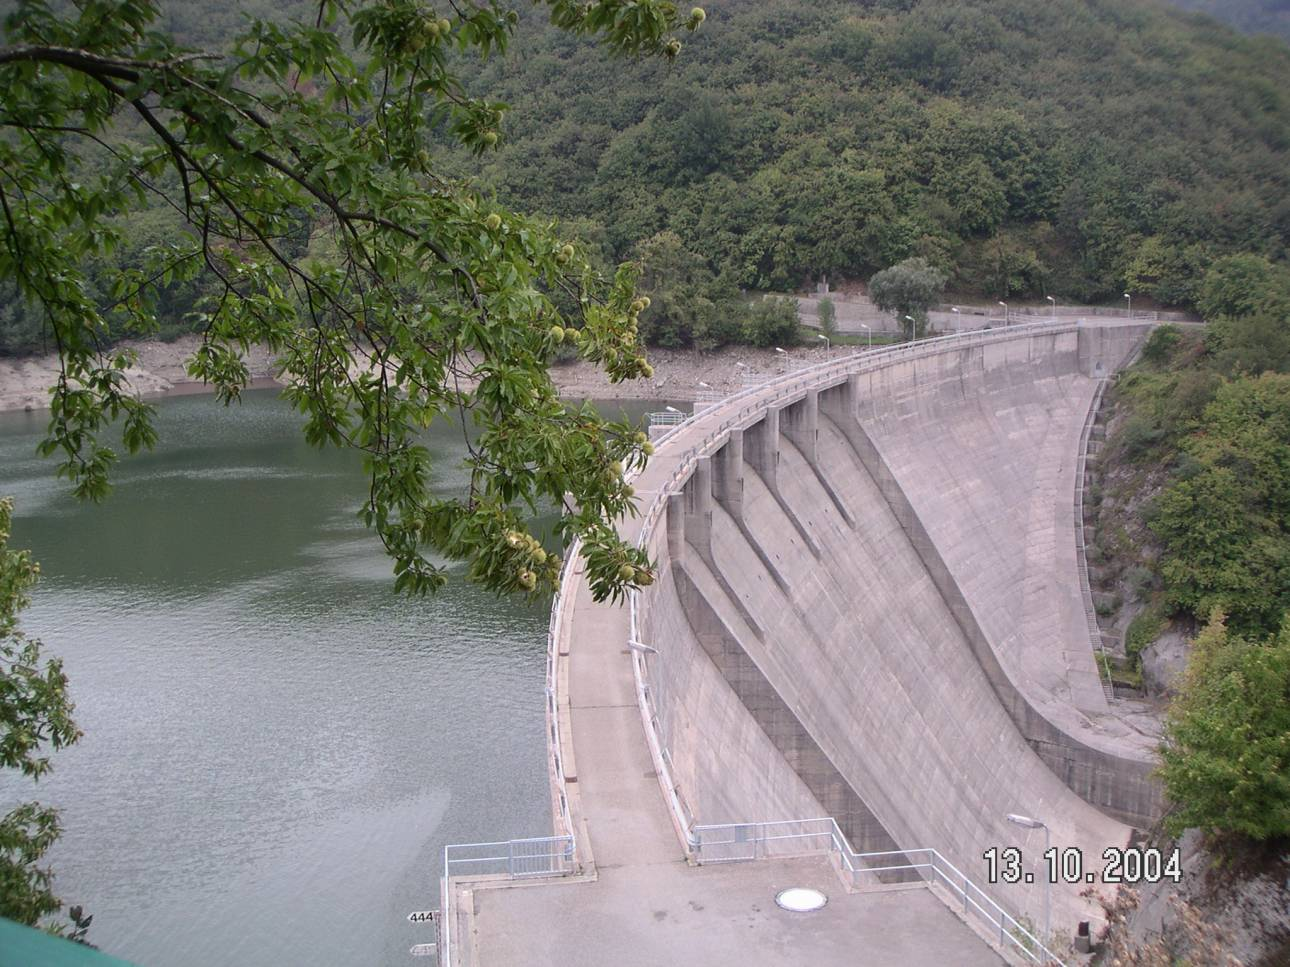 Main dams' projects of a well-established portfolio